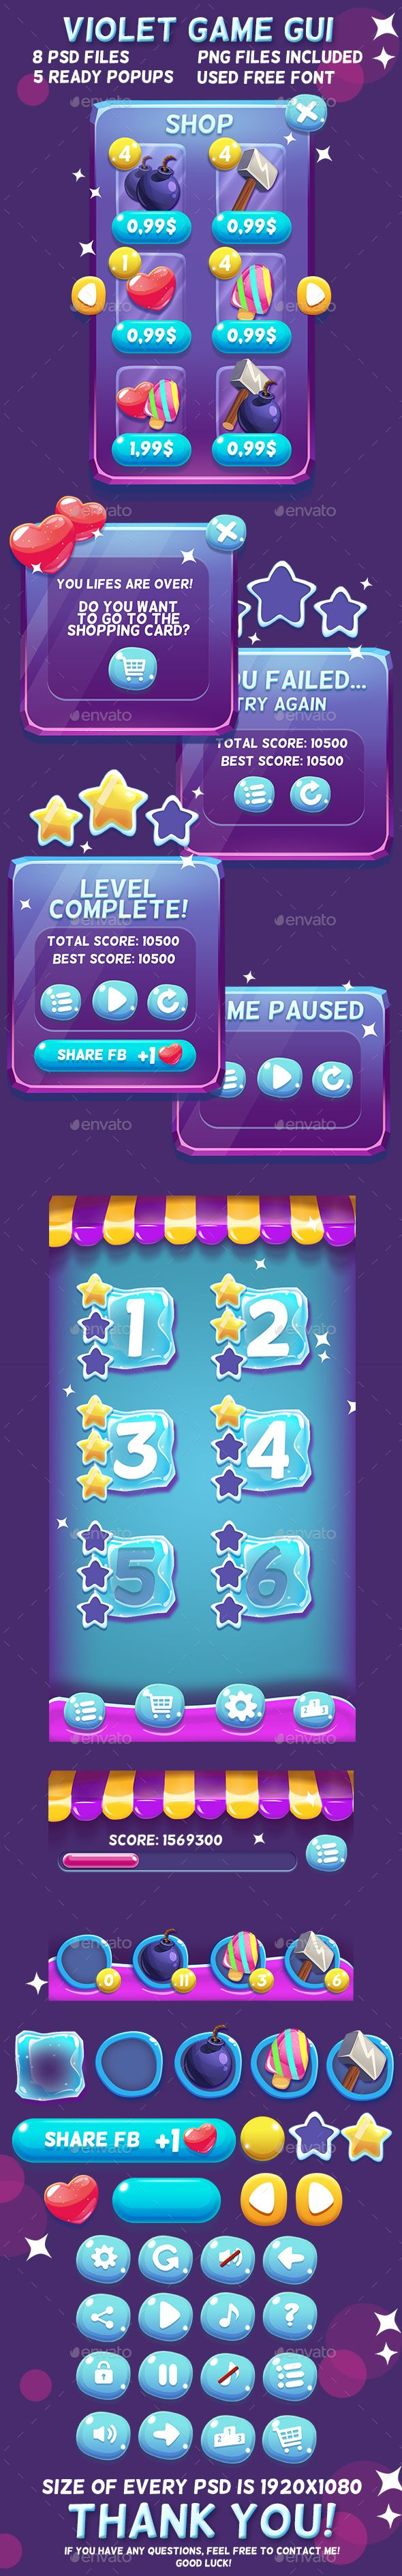 Violet Cartoon GUI Template PSD, Transparent PNG. Download here: http://graphicriver.net/item/violet-cartoon-gui/16882216?ref=ksioks